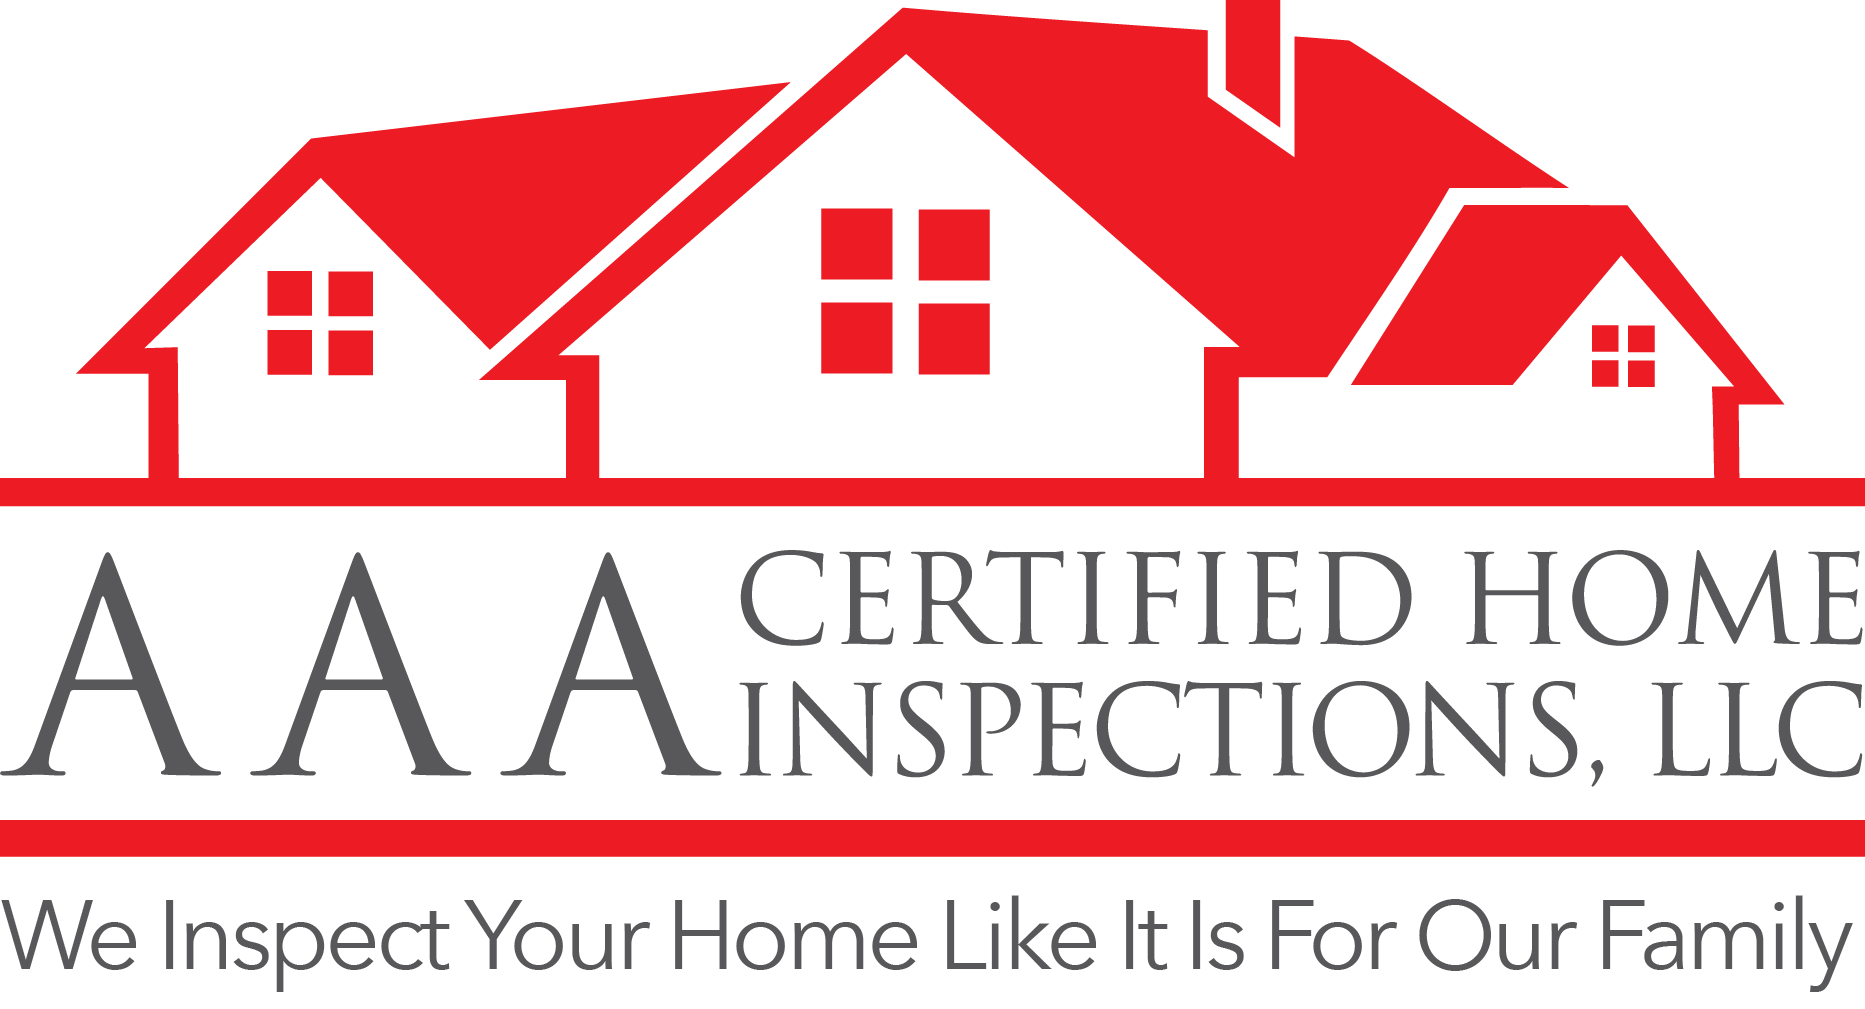 Kansas City Home Inspections By Aaa Your Kansas City Home